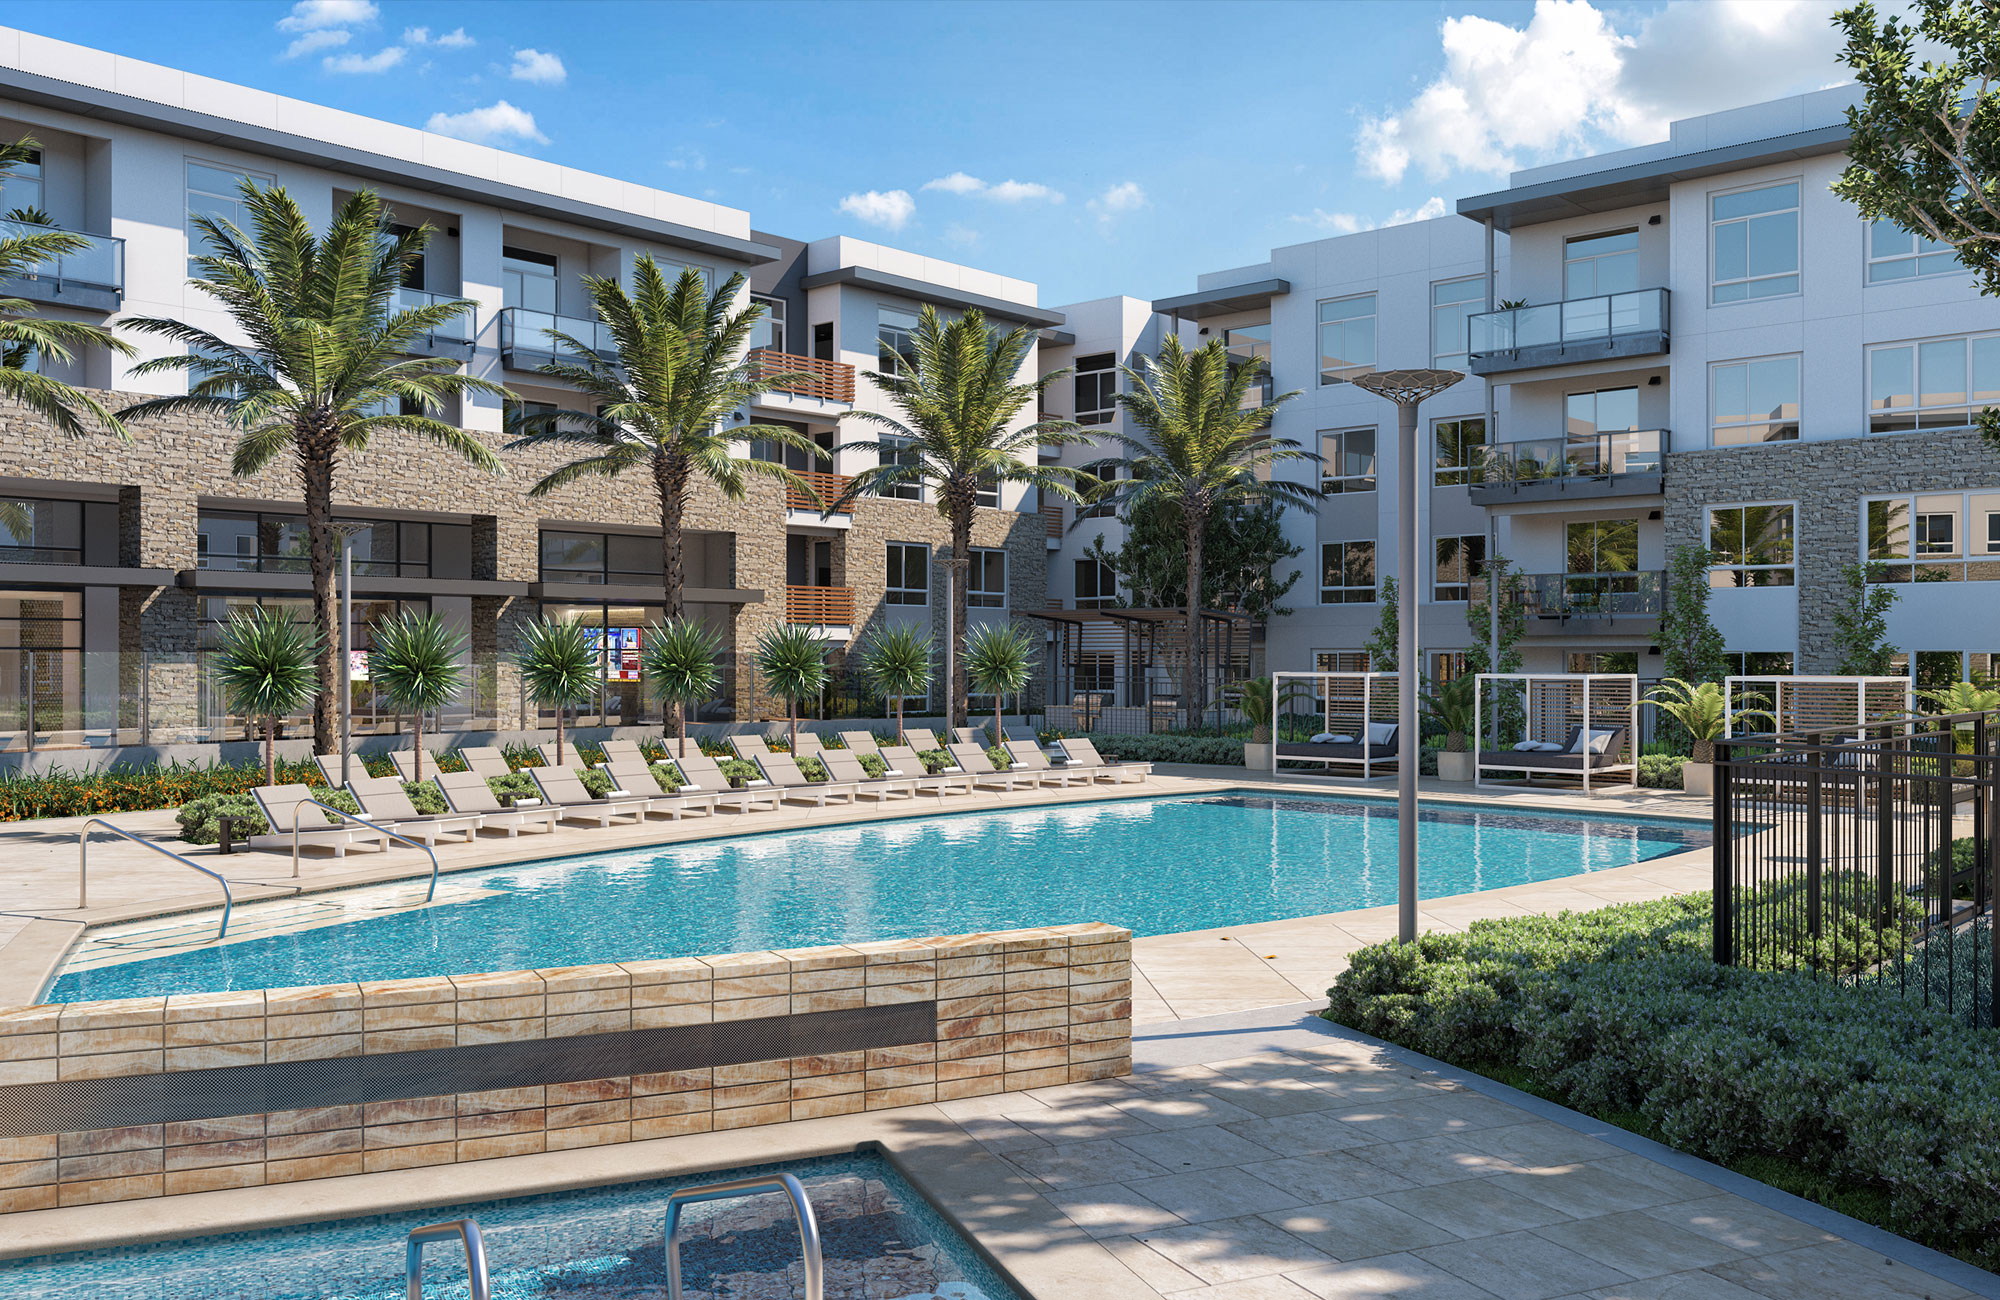 Exterior with large swimming pool surrounded by lounge chairs on deck, palm trees and 4-story apartment building